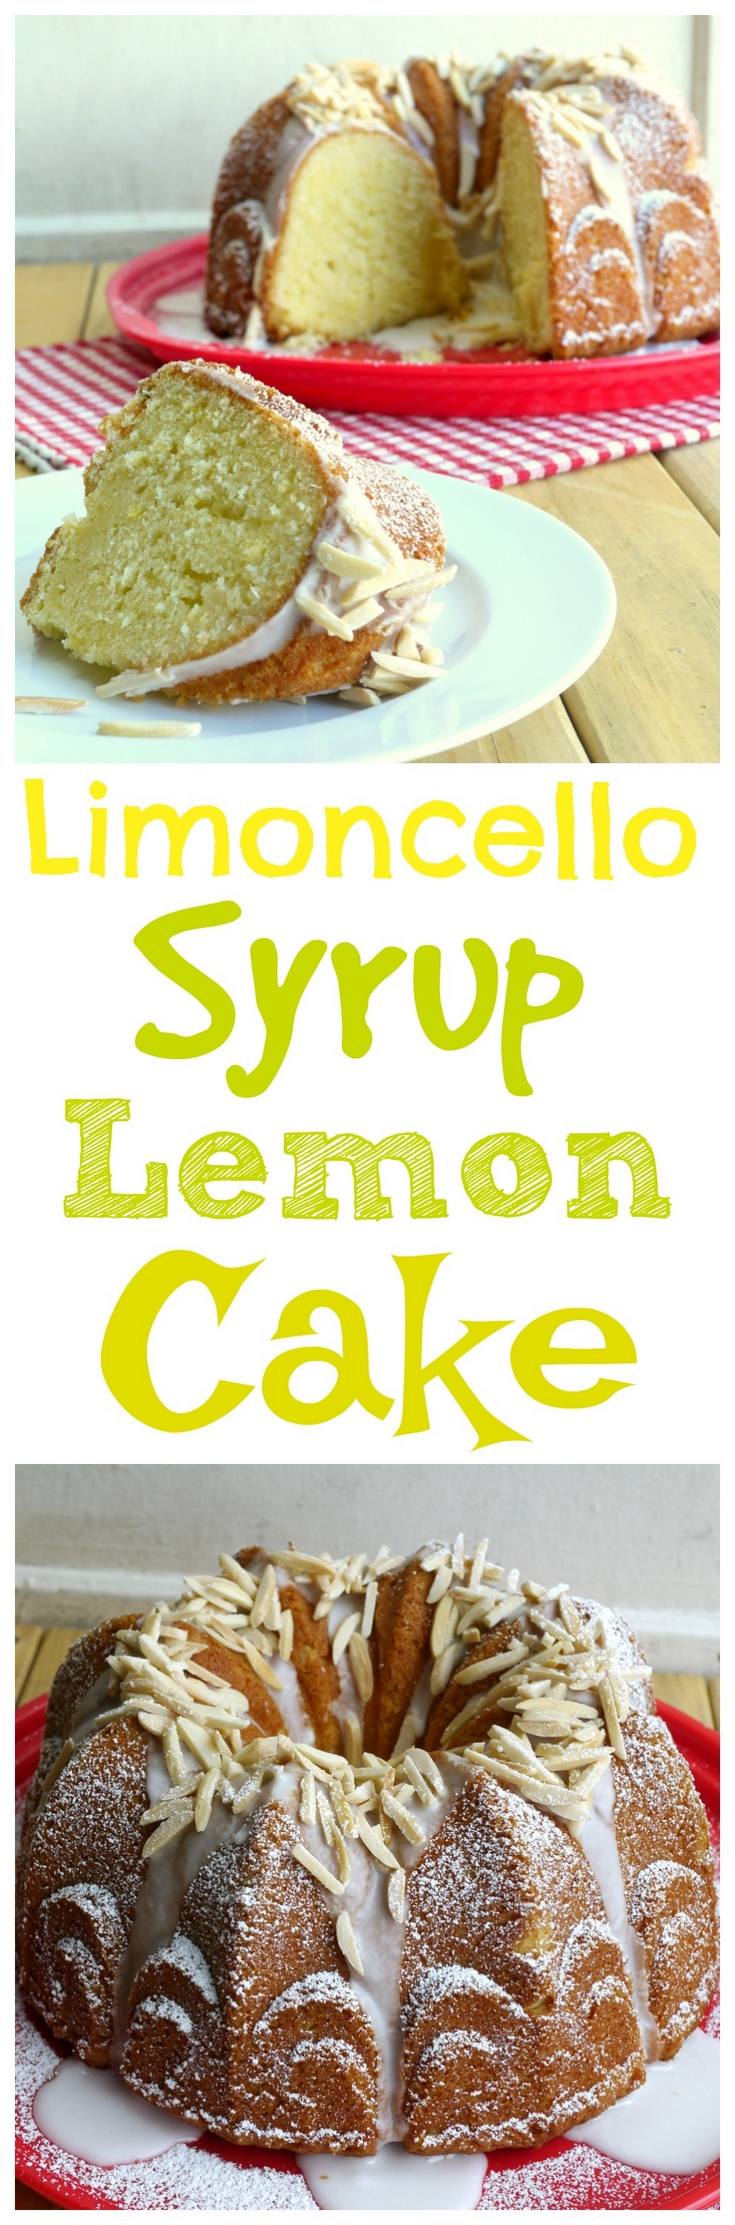 VIDEO + RECIPE: Lemon lovers, this delicious Limoncello Syrup Lemon Cake is for you! A classic lemon Bundt cake take up a notch with the addition of Limoncello! You are going to love the lemon madness from NoblePig.com.